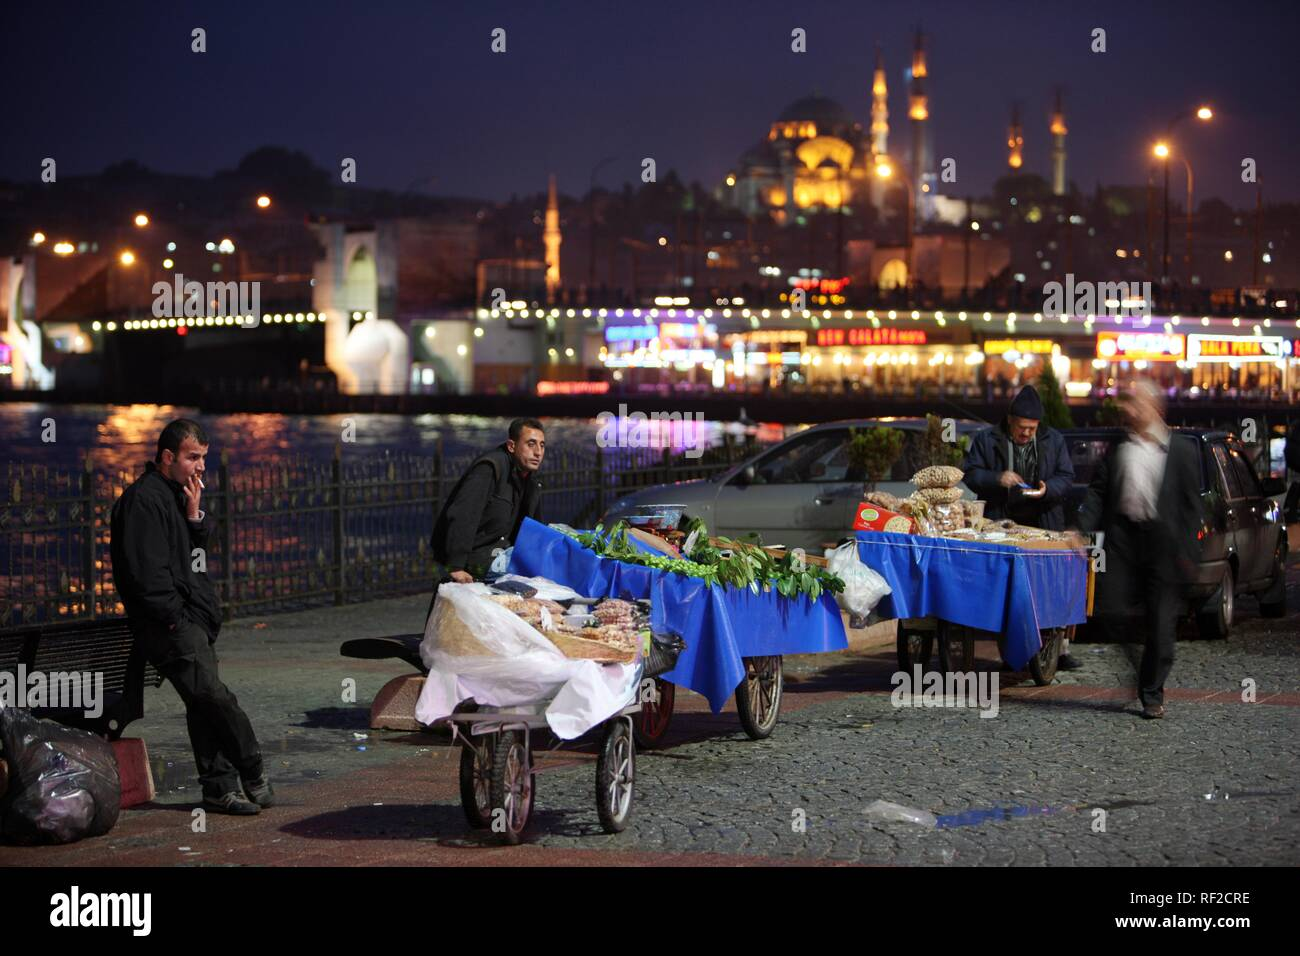 Galata Bridge over the Golden Horn, skyline of Eminoenue and Sultanahmet district, mosques, Istanbul, Turkey - Stock Image